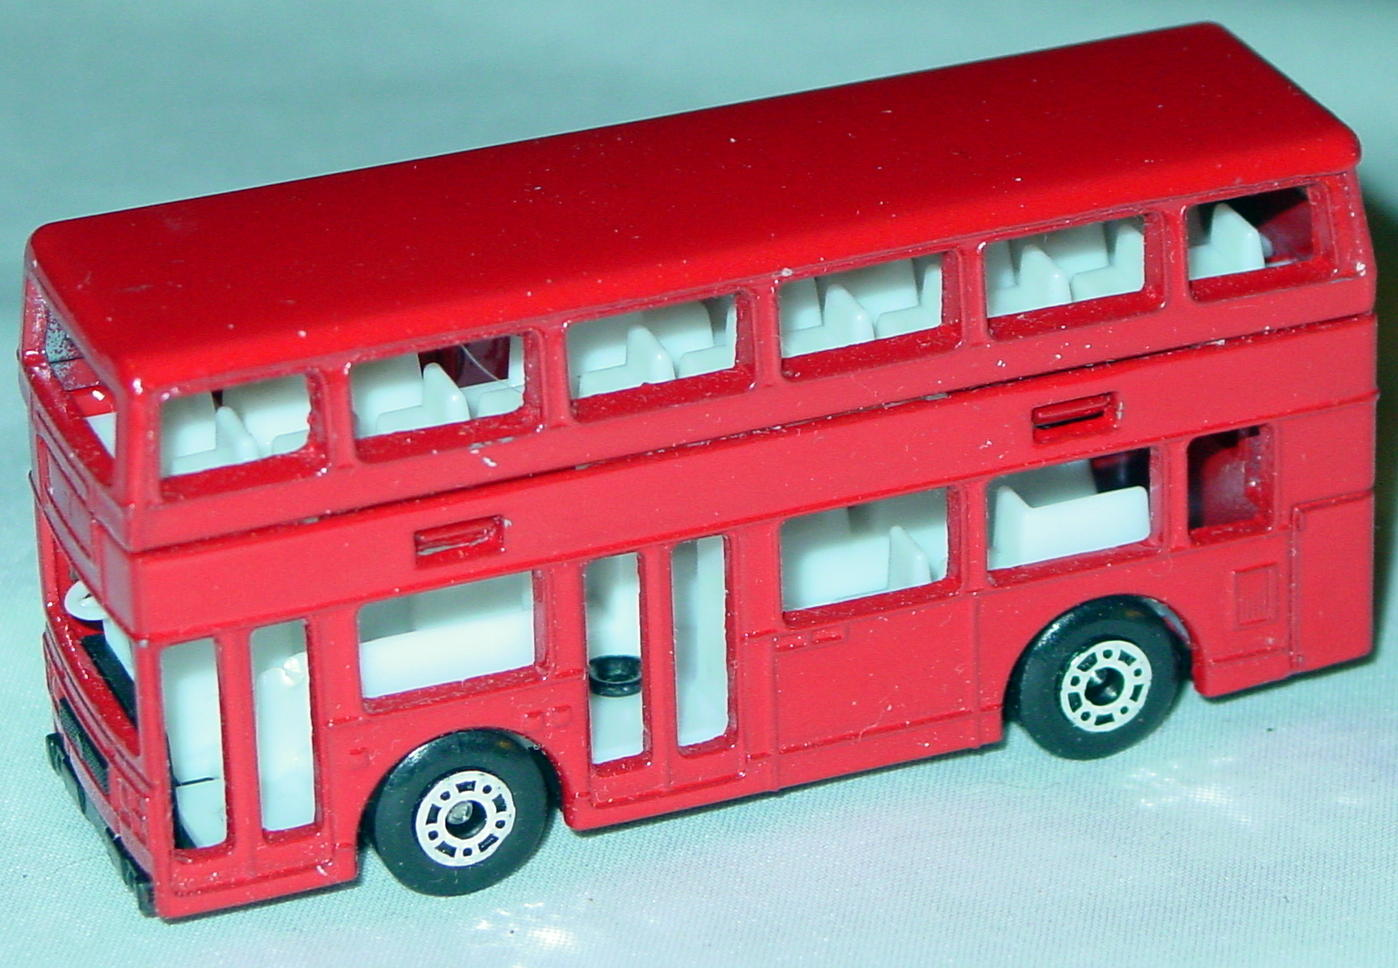 ASAP-CCI 17 C 69 - Titan Bus Red no tampo ASAP blank three slight chips